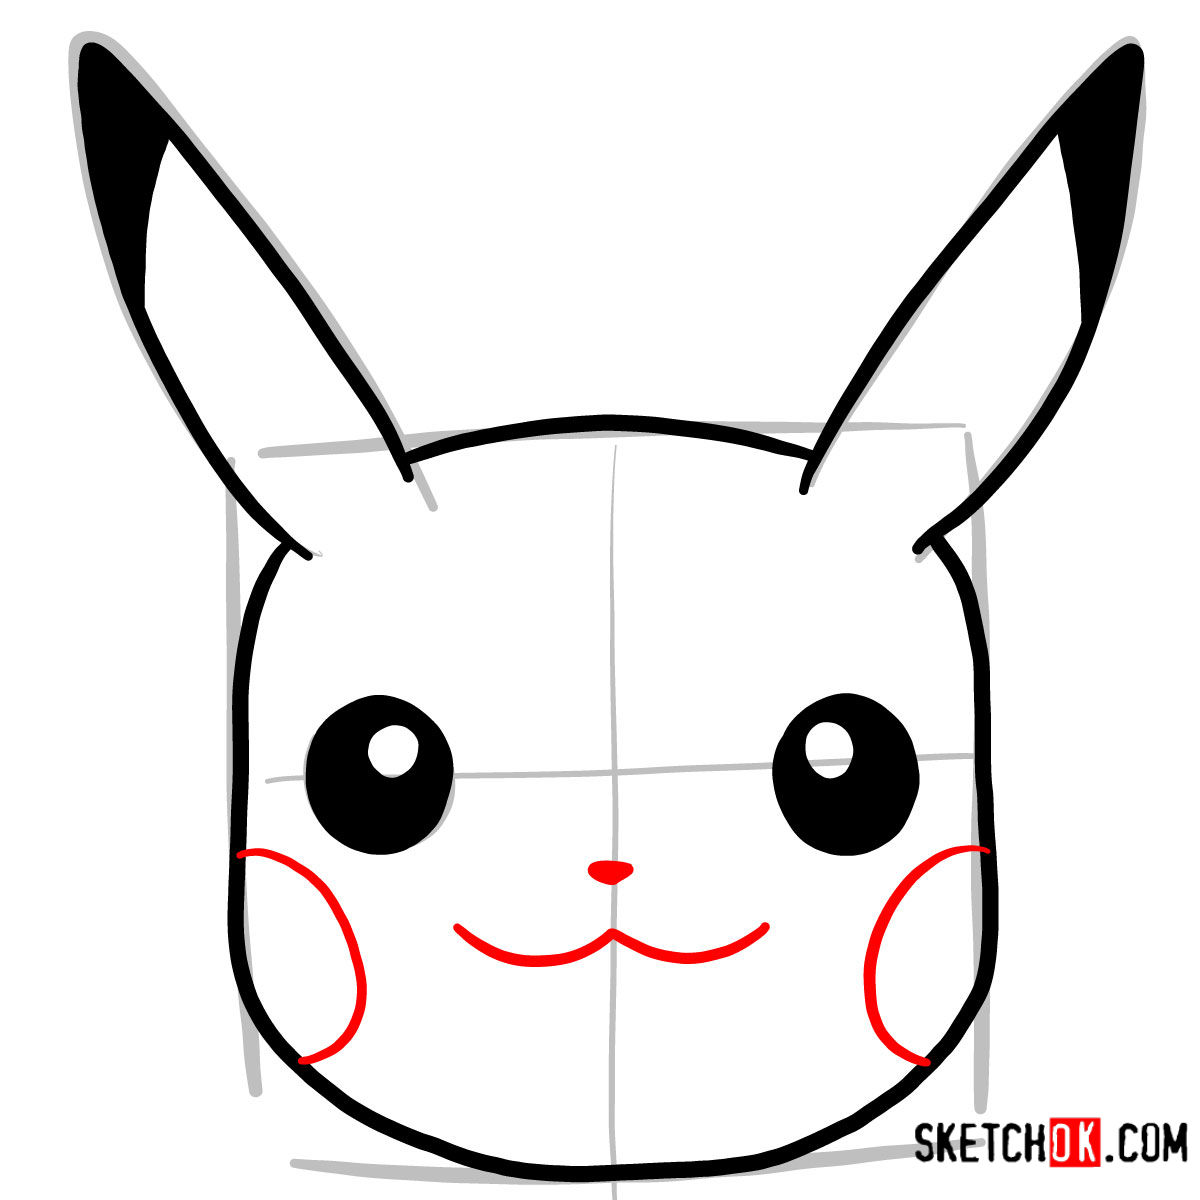 How to draw Pikachu's face | Pokemon - step 05